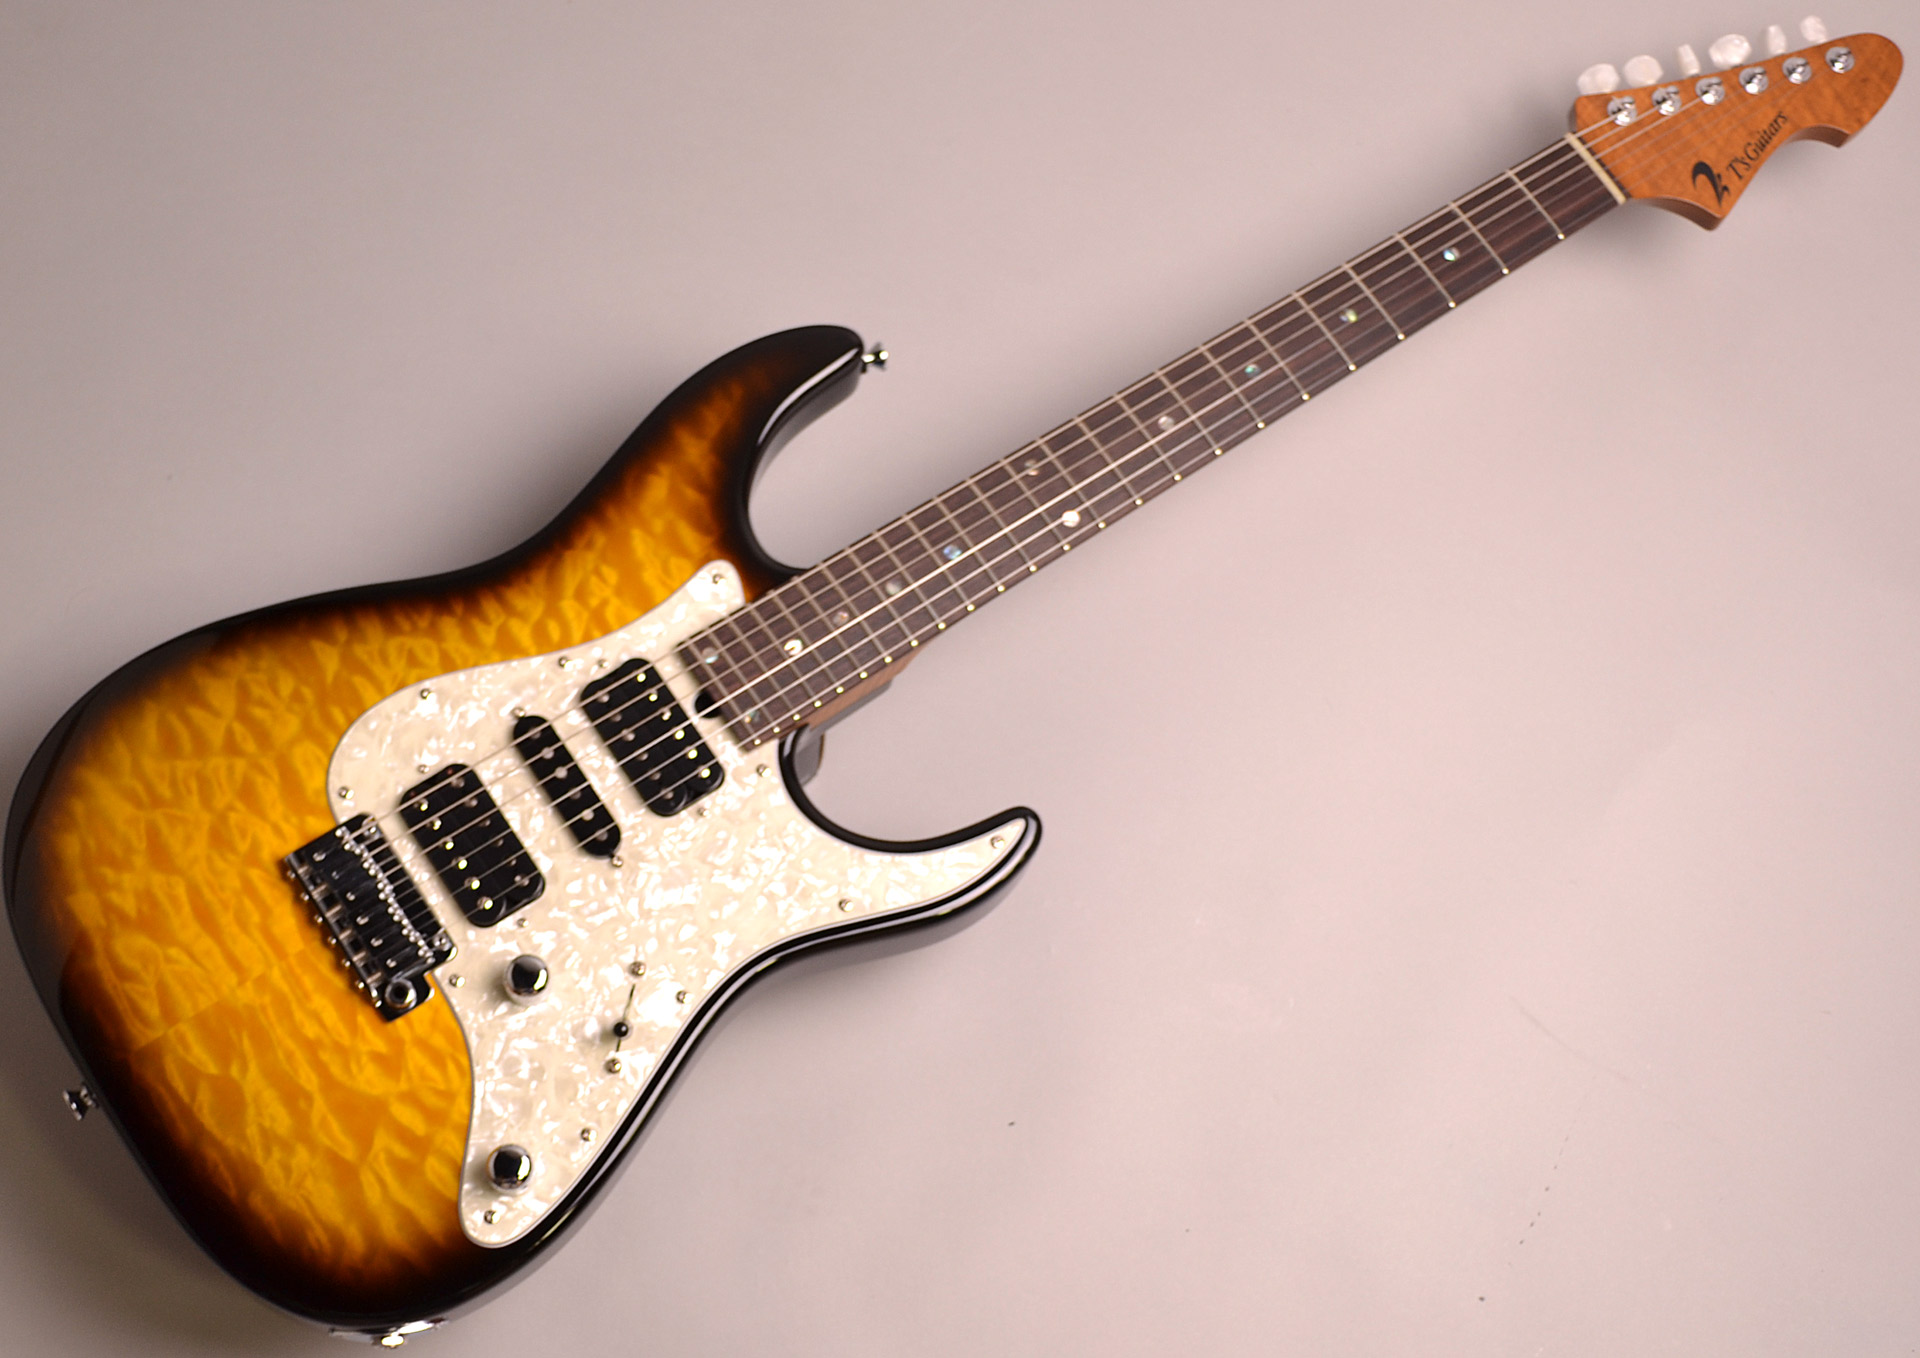 DST-Classic24F Roasted Flame Maple Neckの全体画像